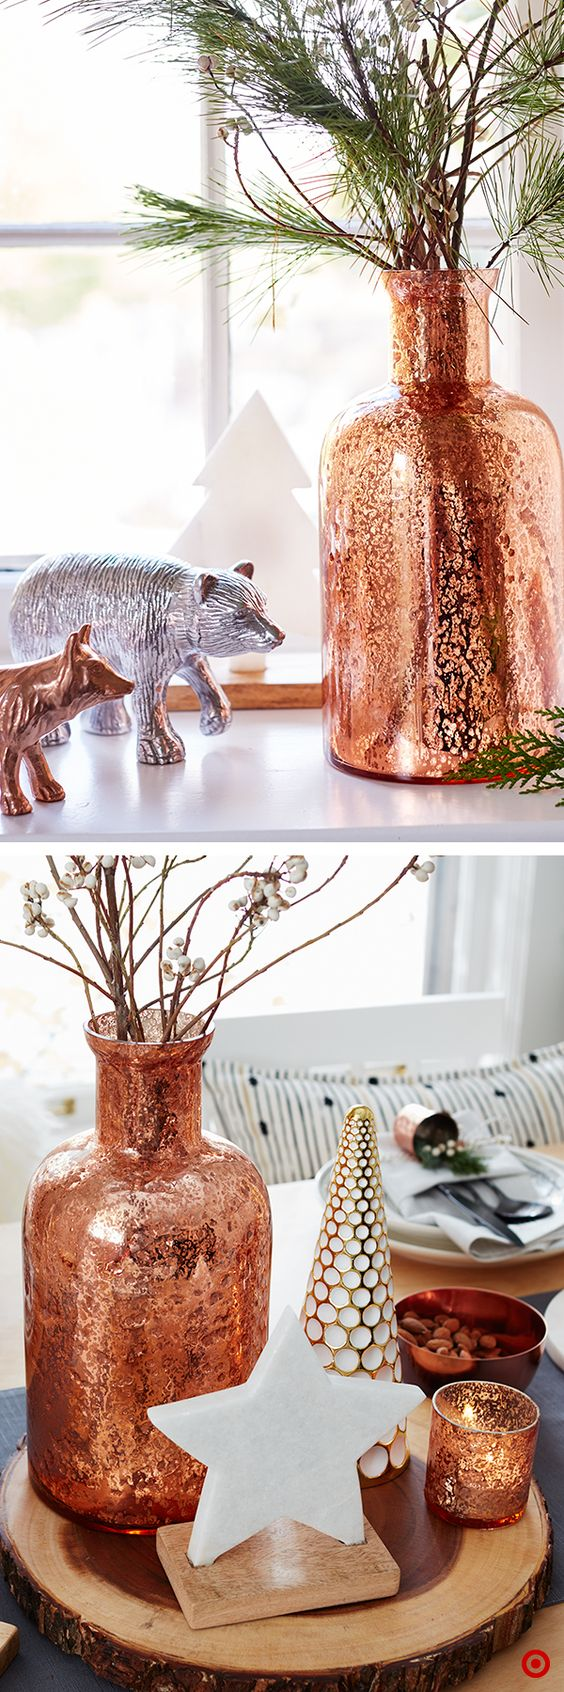 The apothecary-inspired style of this mercury-glass copper jug lends a vintage look that fits right into the holiday season. Add natural sprigs of pine and berries, and its simple pop of shine will make any small space feel more celebratory. Or, use it in a centerpiece—just pick 3 items in varying sizes, shapes and materials, like a mix of woods and metals. Bonus: the glass reflects the twinkling candles or lights, further adding to a party's cozy ambiance.